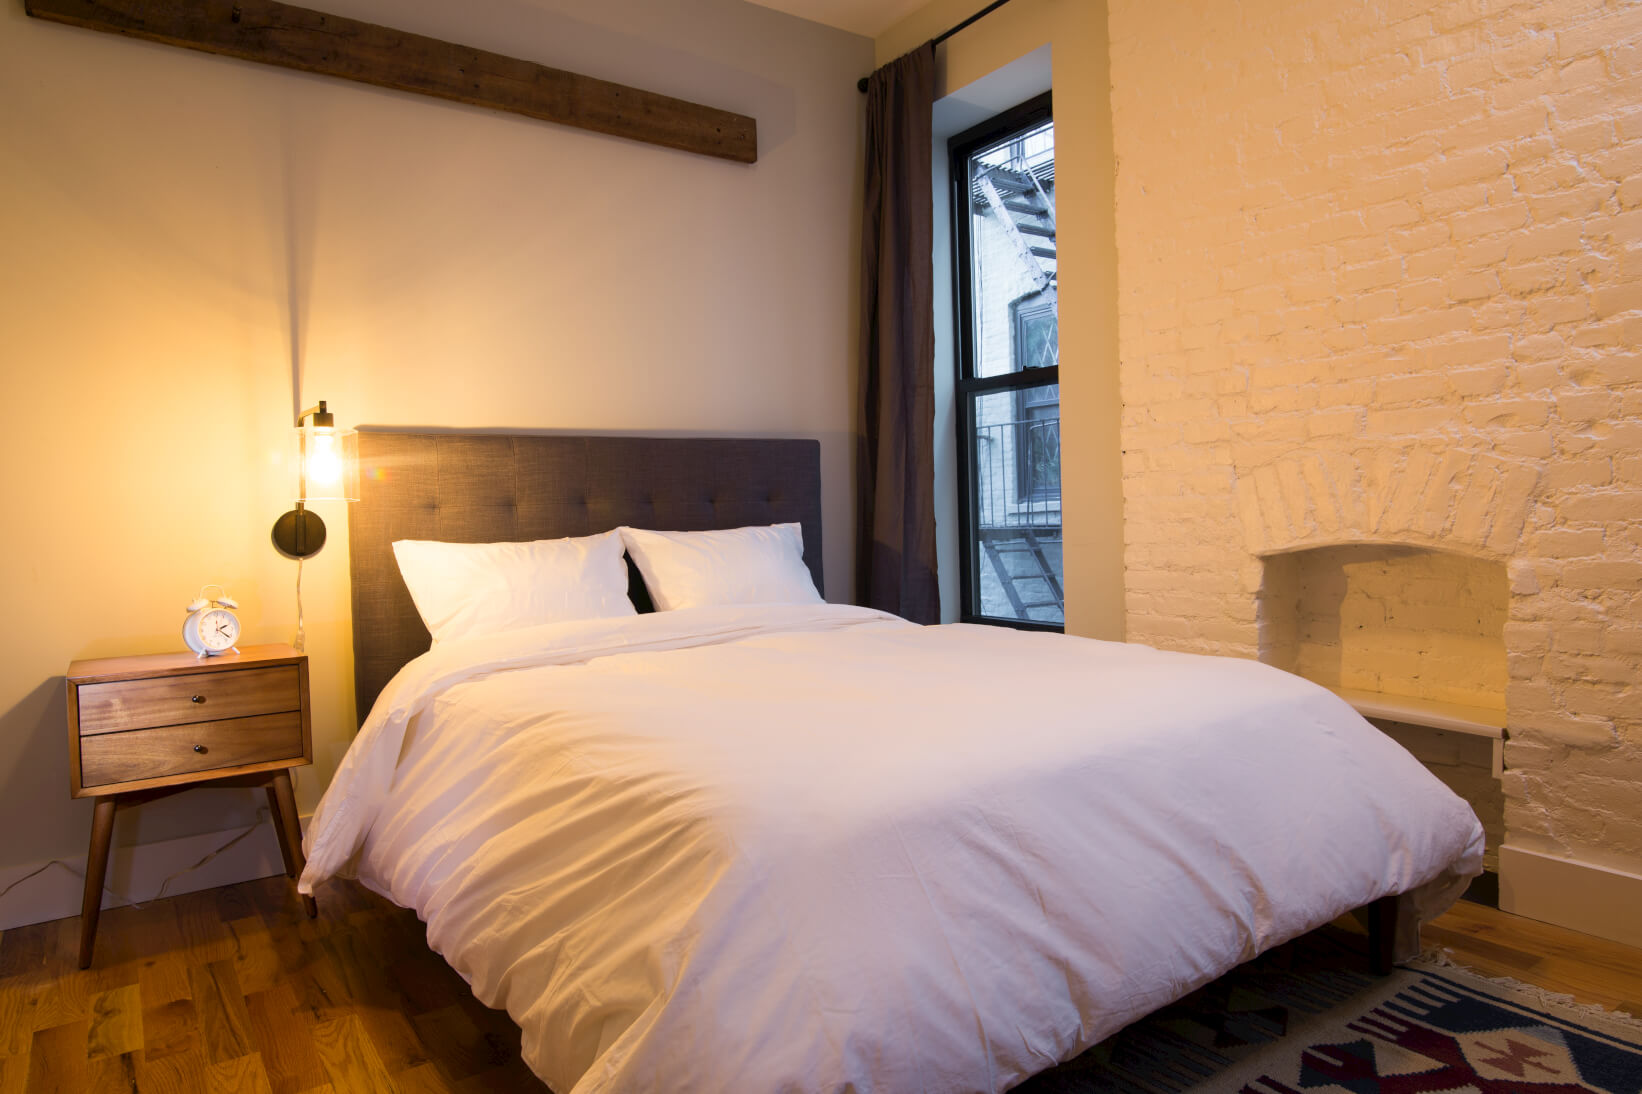 Every bedroom in our coliving suites is beautifully furnished with our members in mind. Pictured: Common Pacific in Crown Heights, Brooklyn.